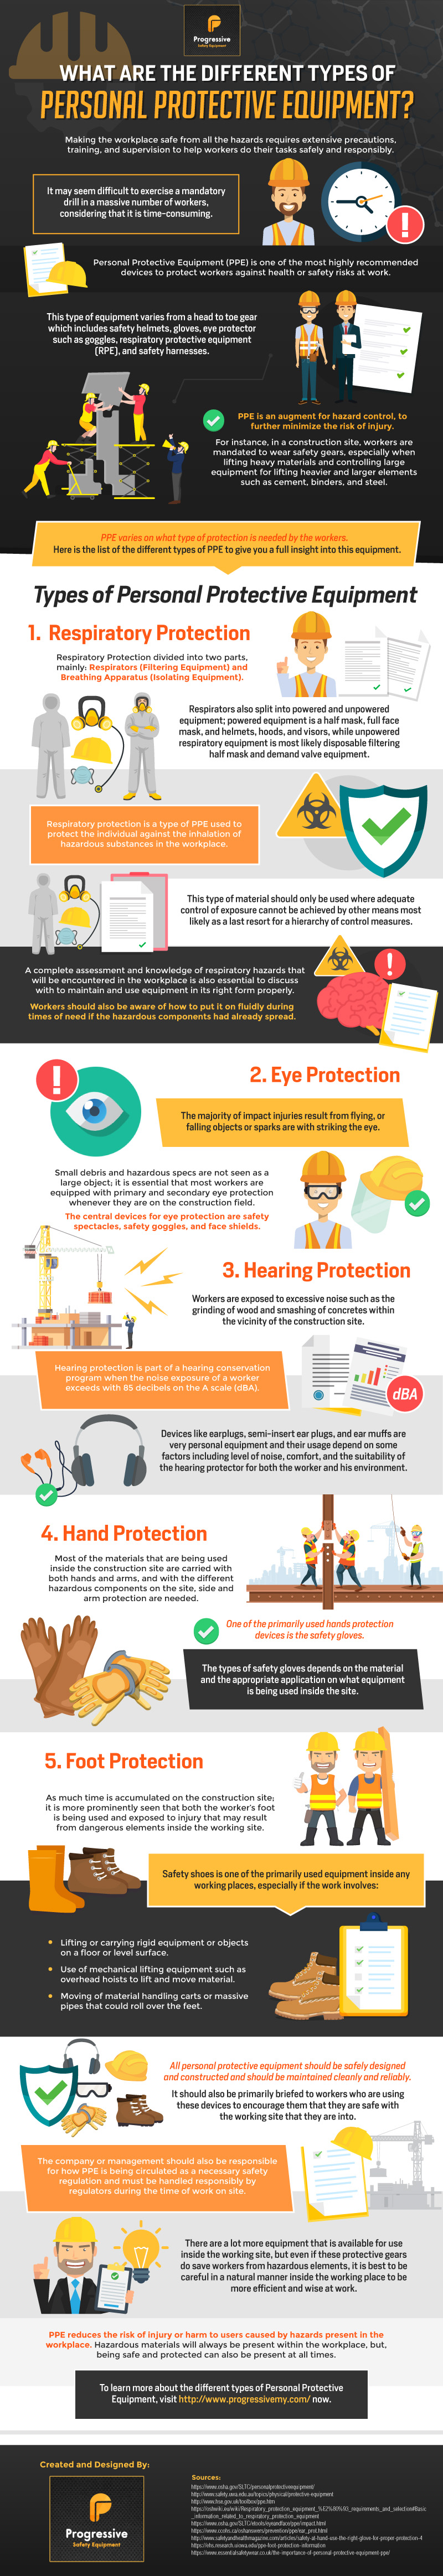 Different Types of Personal Protective Equipment [Infographic]